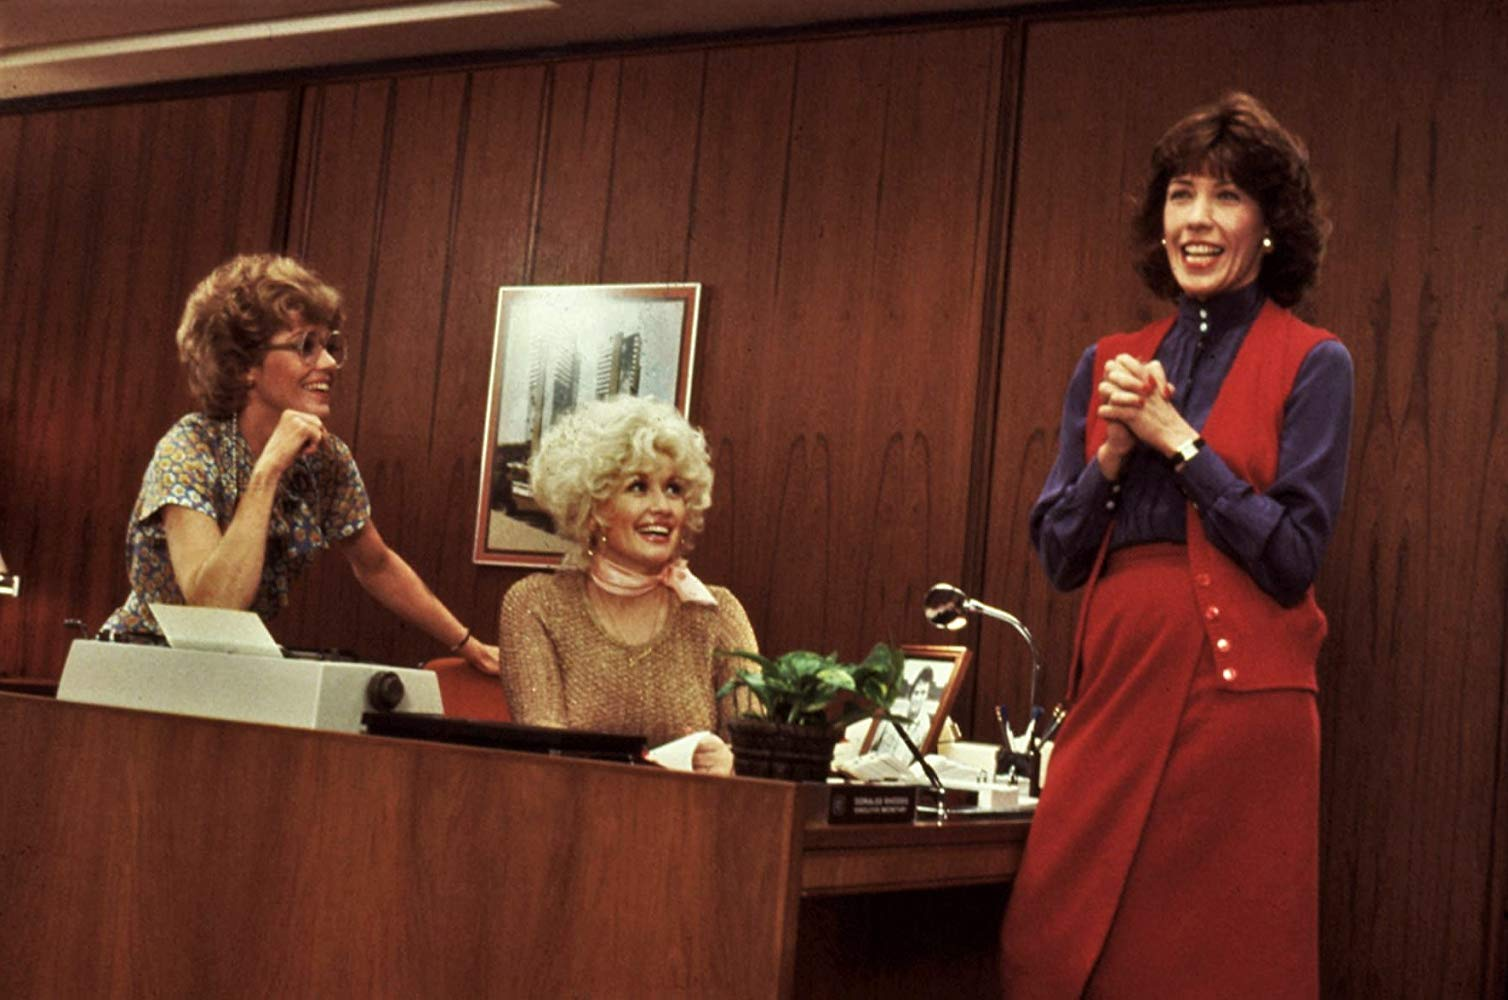 Screenwriter Patricia Resnick on Altman, Mad Men, and Working 9 to 5 — 9 to 5.